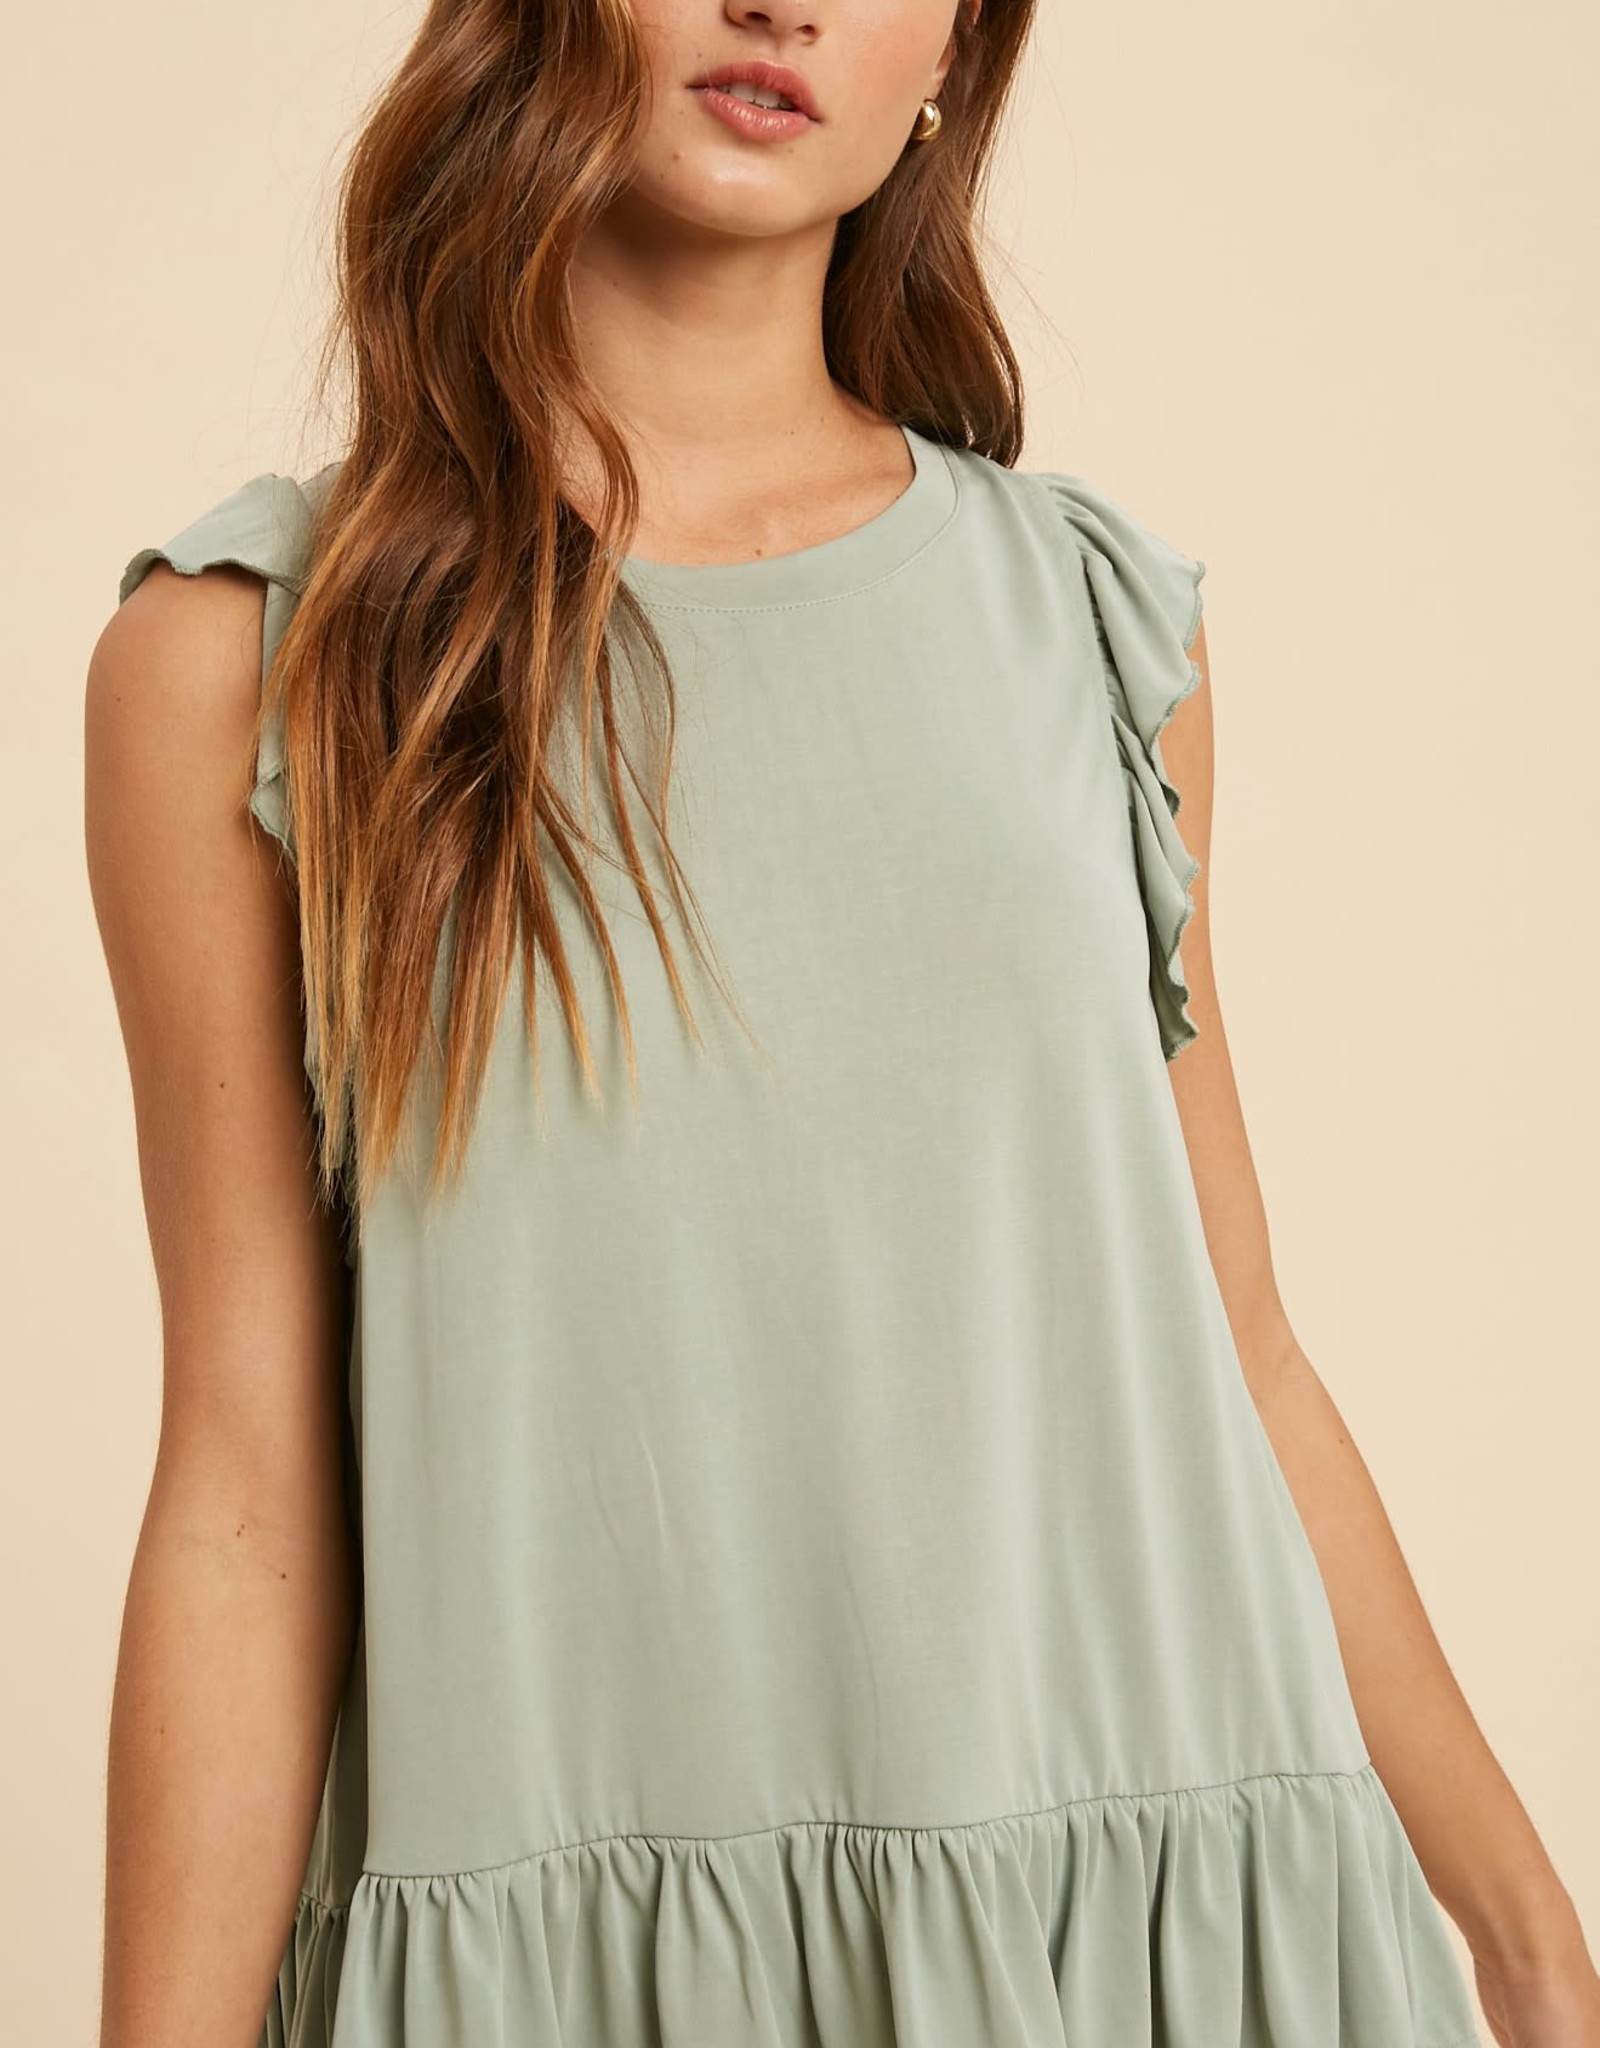 Miss Bliss Ruffled Slvls Blouse- Dusty Sage